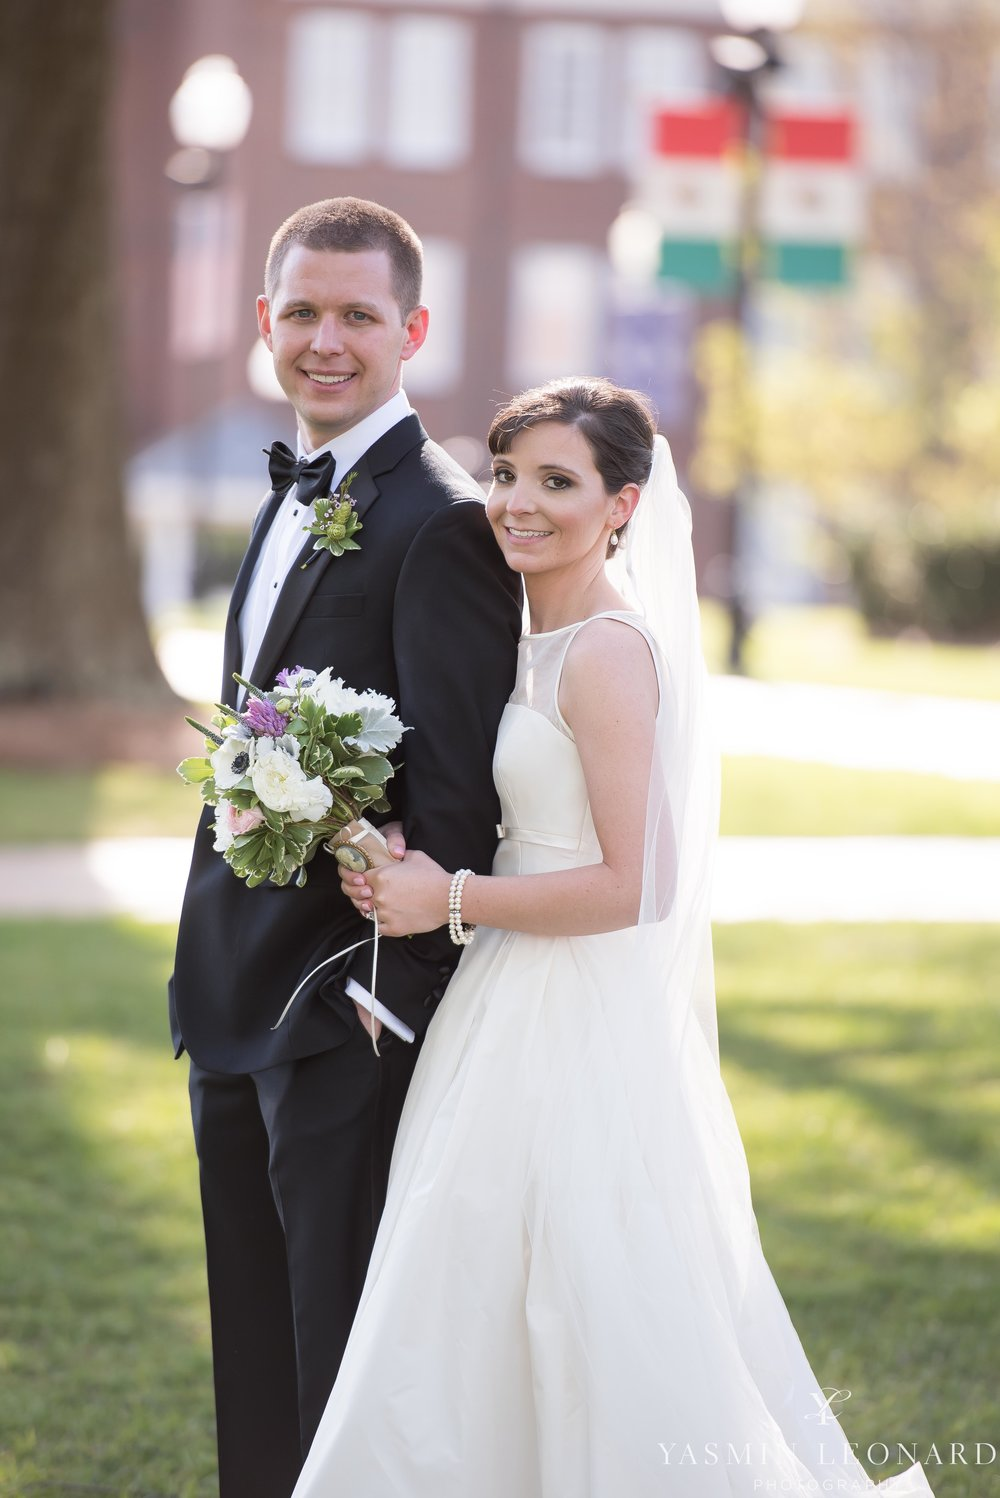 JH ADAMS INN - HIGH POINT UNIVERSITY CHAPEL WEDDING - HPU CHAPEL - HIGH POINT WEDDINGS - NC WEDDING PHOTOGRAPHER - YASMIN LEONARD PHOTOGRAPHY - HIGH POINT NC - HIGH POINT WEDDINGS -38.jpg